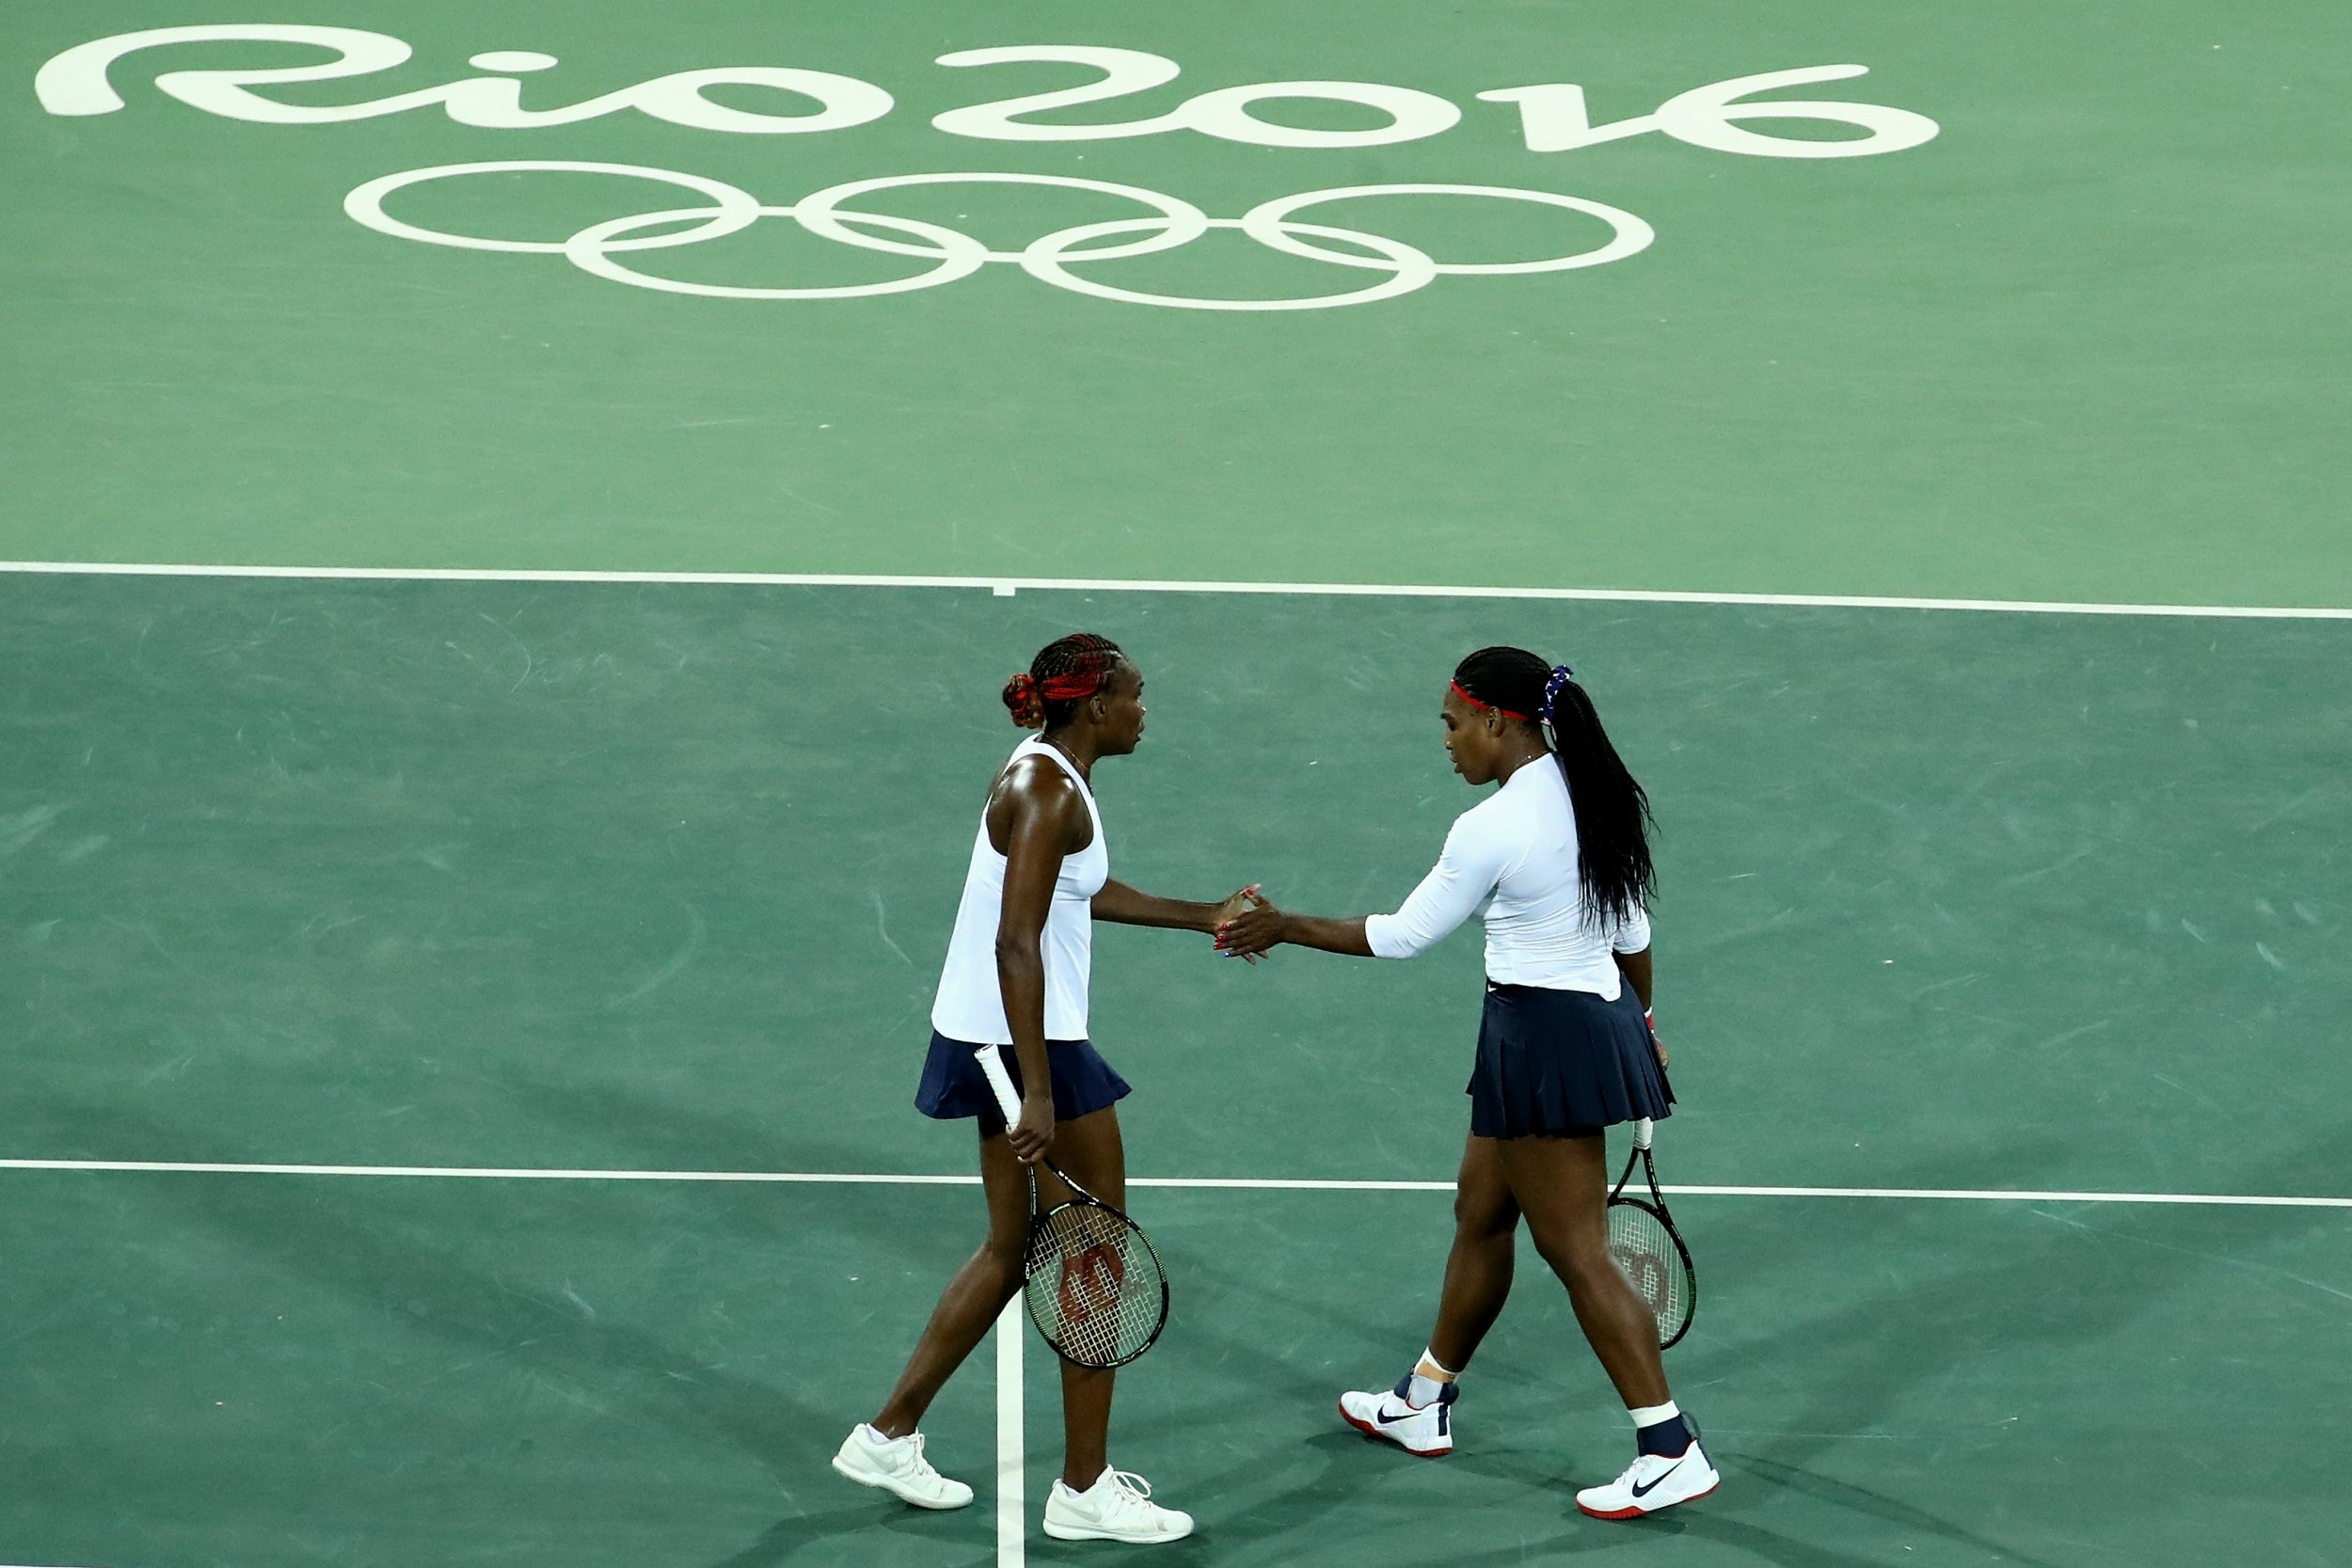 Venus and Serena Williams at the Rio 2016 Olympic Games.